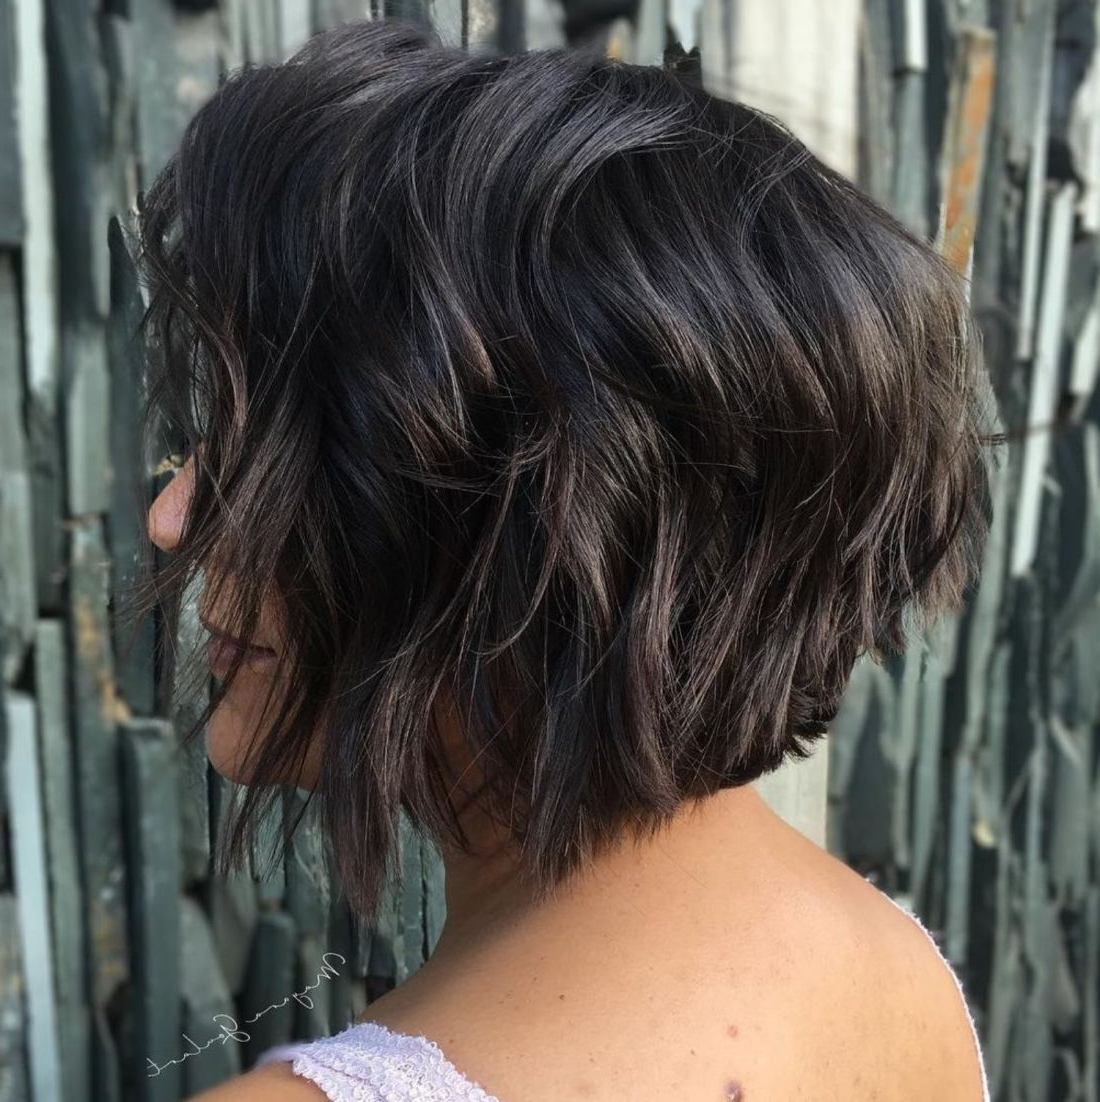 60 Short Shag Hairstyles That You Simply Can't Miss | Wavy Pertaining To Short Sliced Inverted Bob Hairstyles (View 6 of 20)